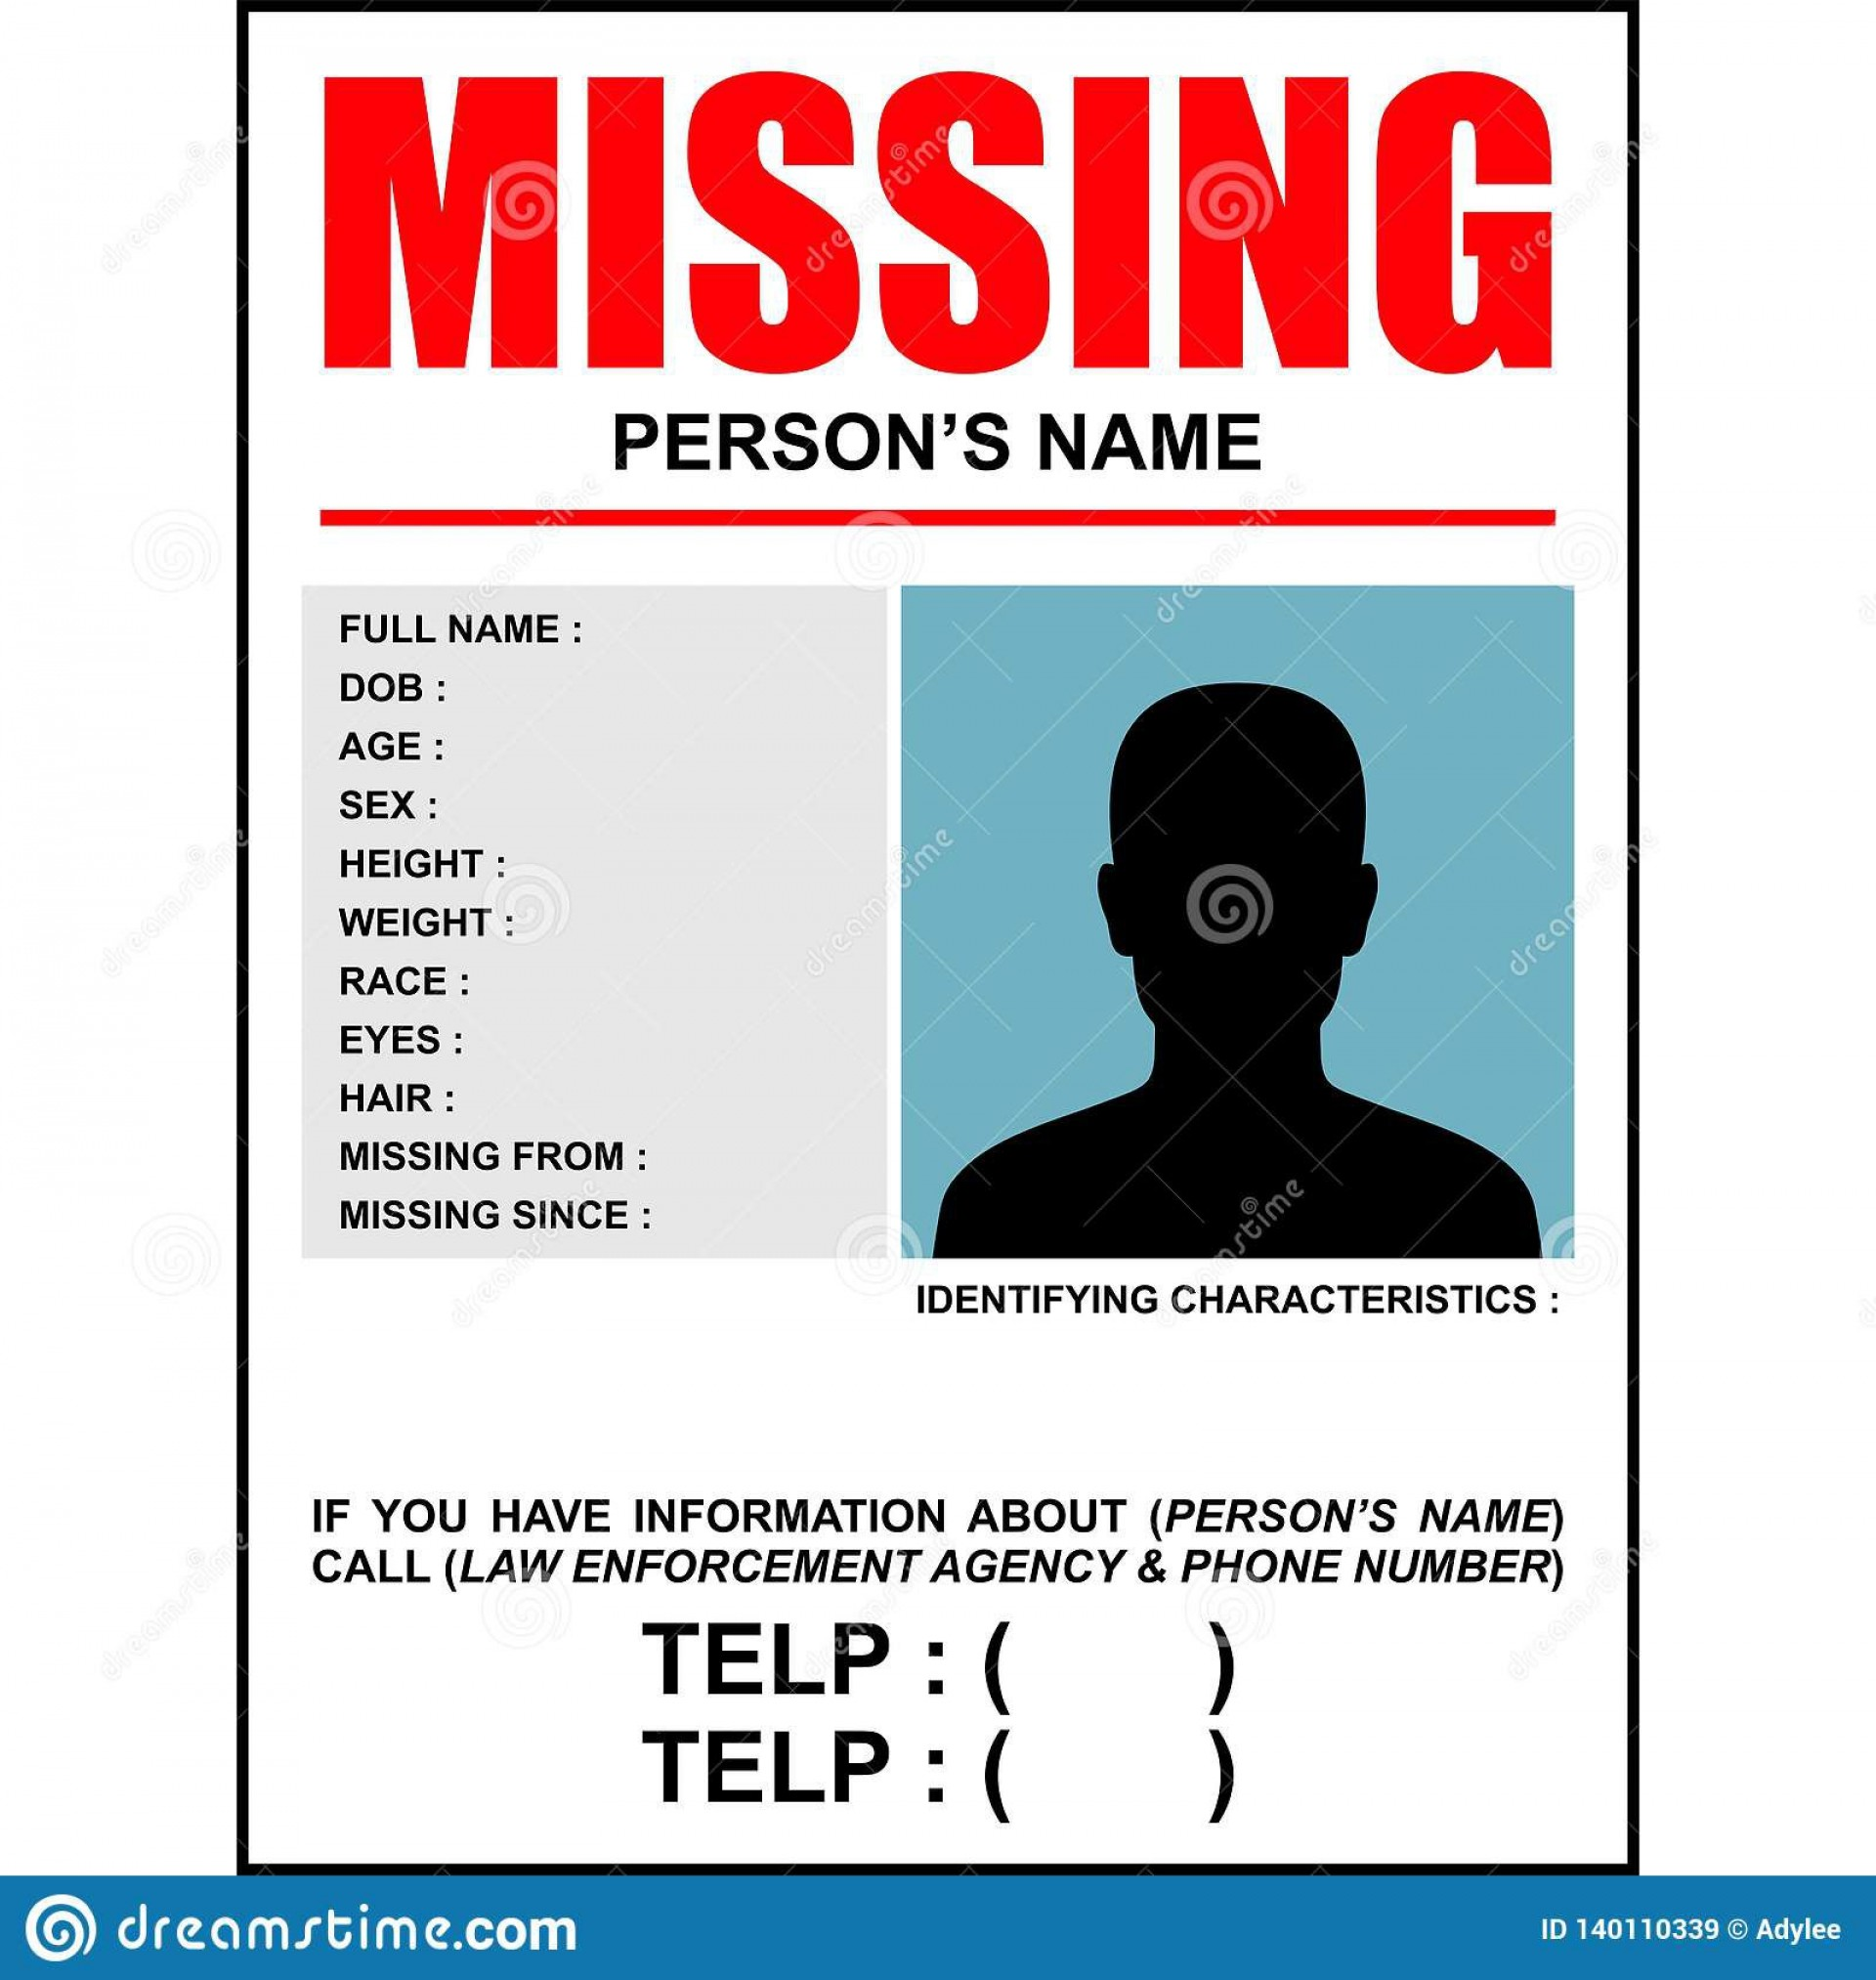 007 Dreaded Missing Person Poster Template Word High Resolution 1920